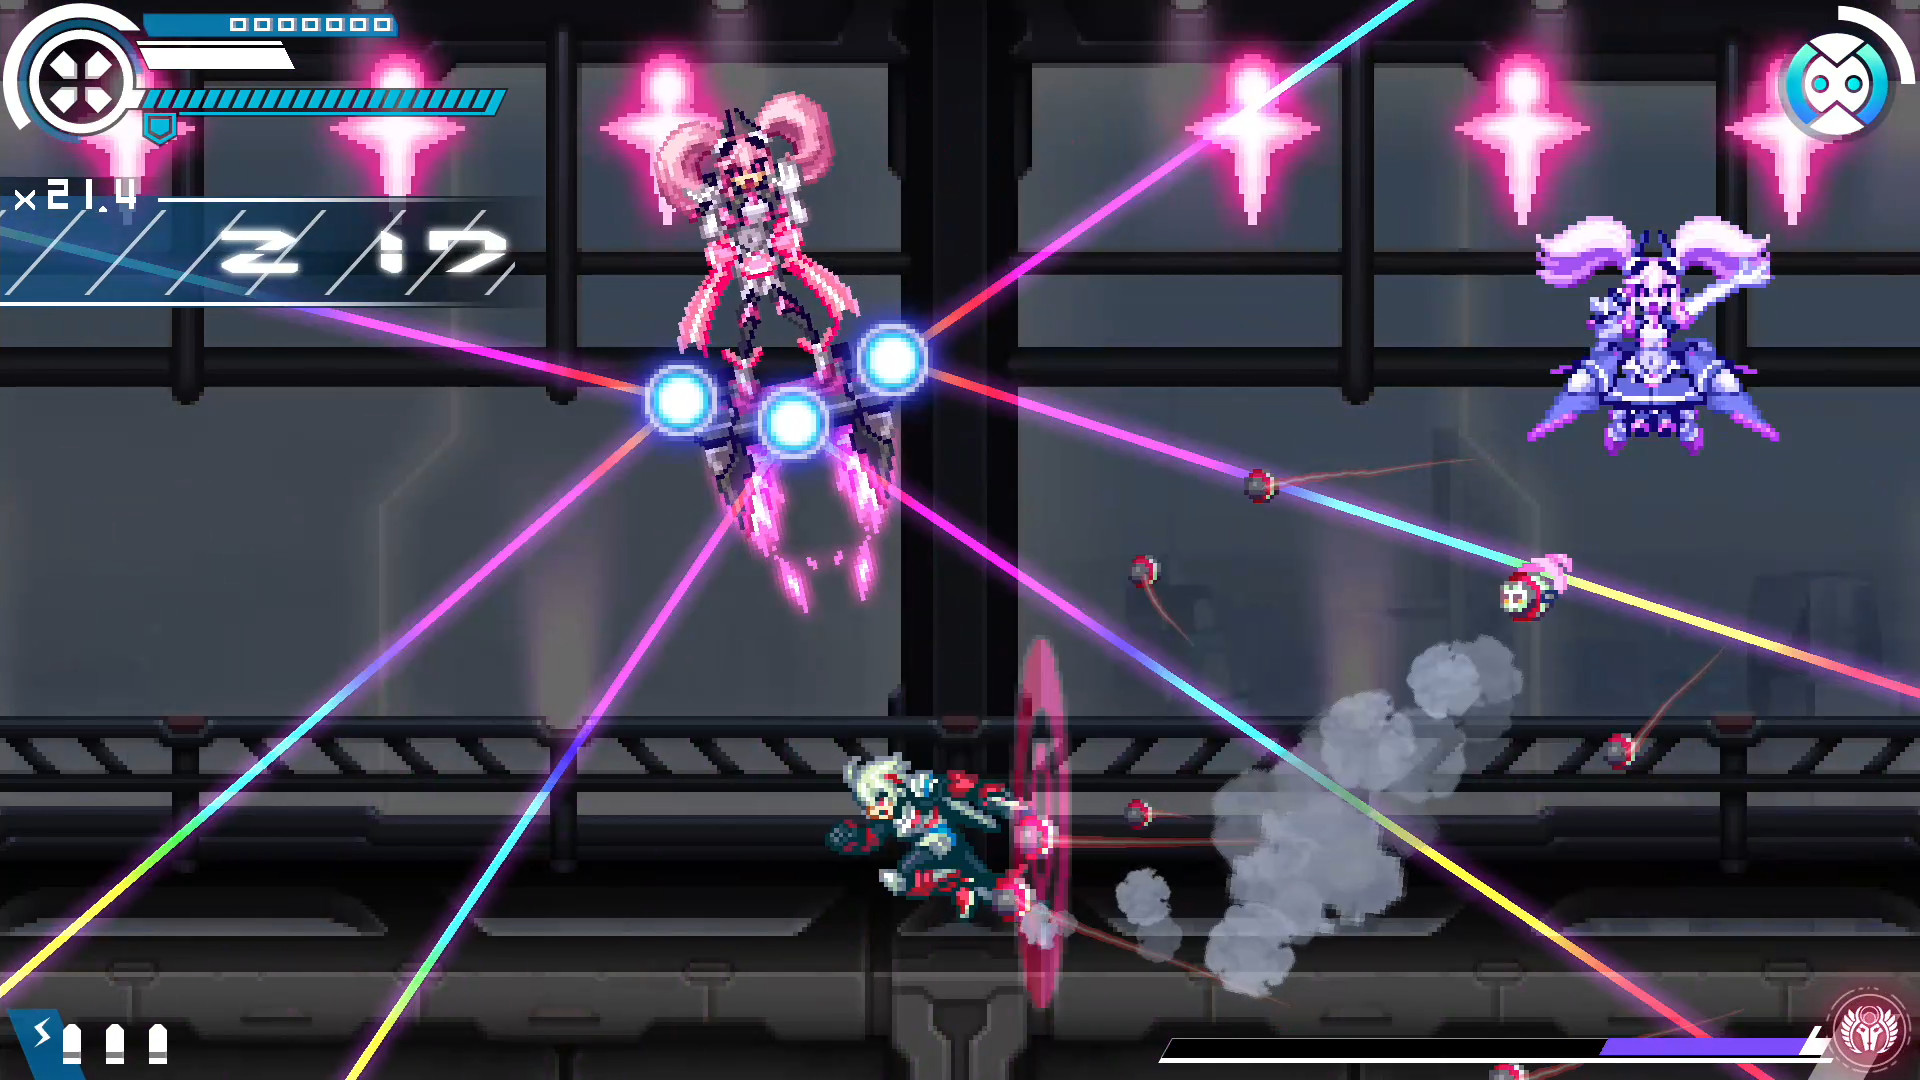 Inti Creates, the studio behind Gunvolt and the Bloodstained spinoffs, says it has three new titles in development screenshot